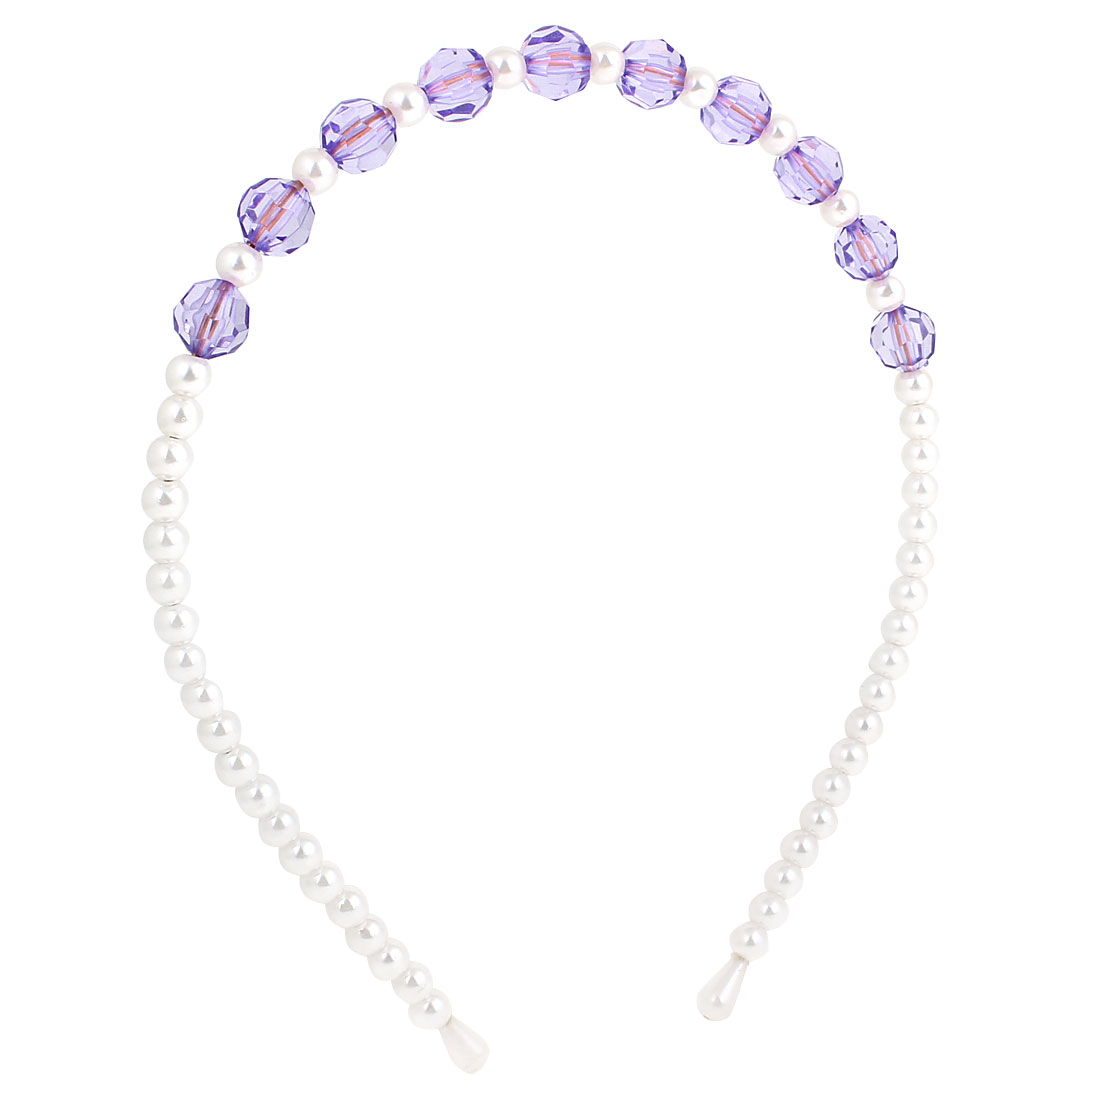 White Purple Plastic Crystal Beads Headband Hair Hoop Ornament for Girls